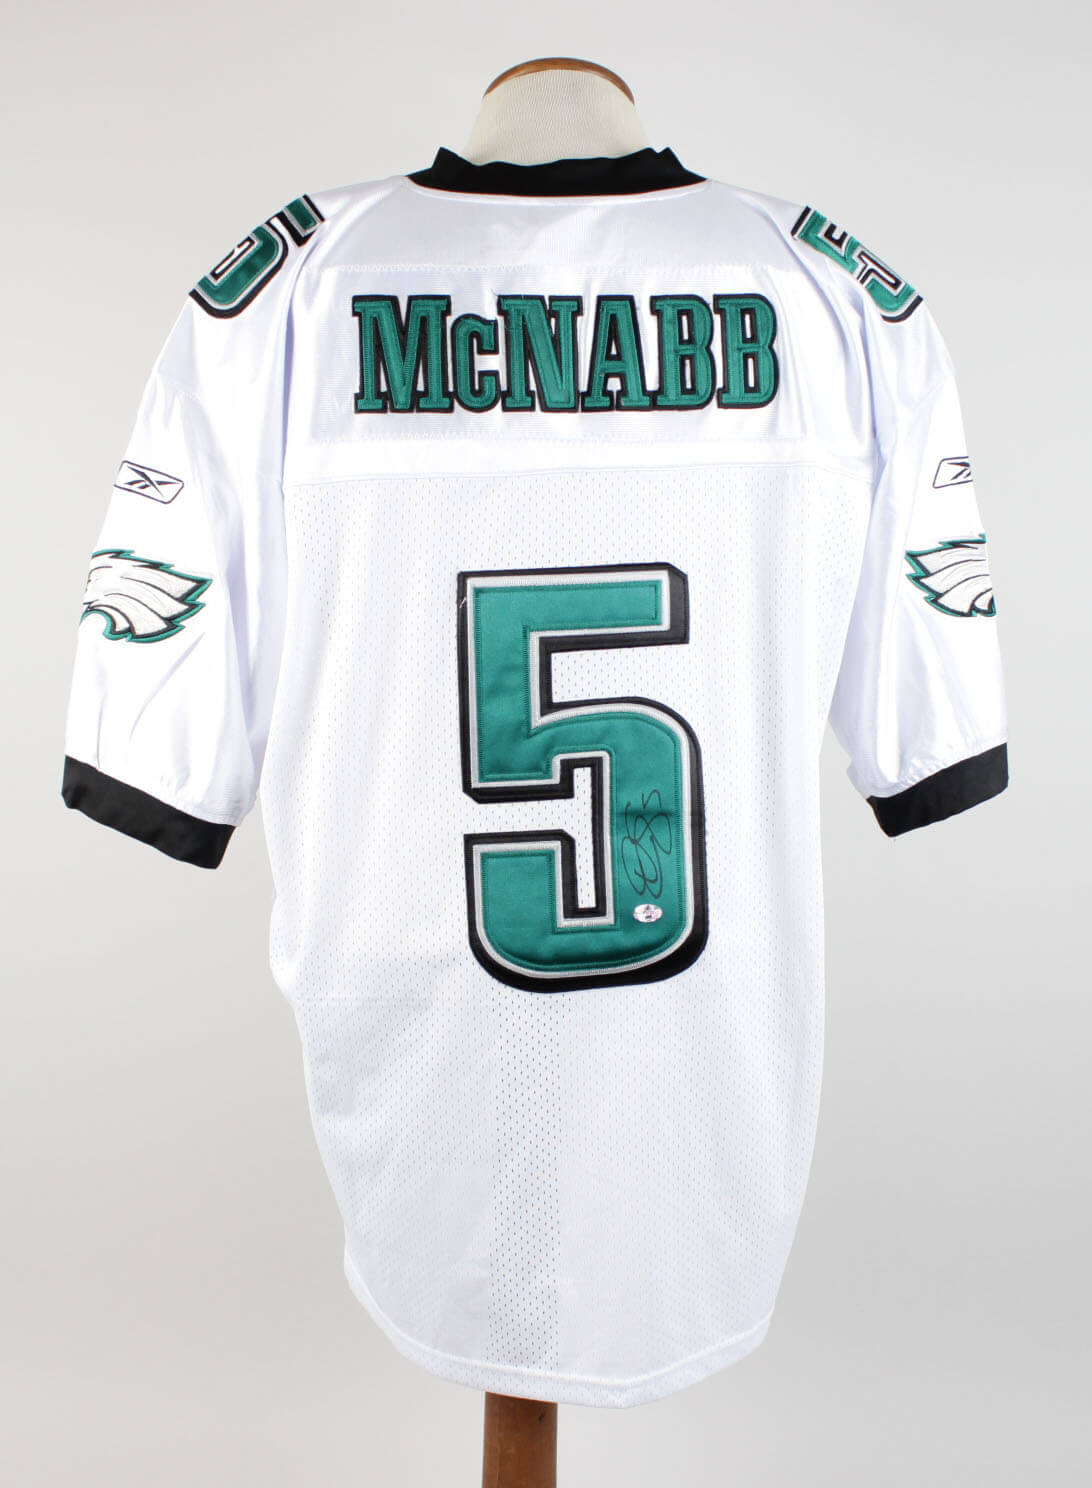 1d9ce78254def Donovan McNabb Signed & Inscribed (5) Philadelphia Eagles White Jersey  Signature Grades 9-10